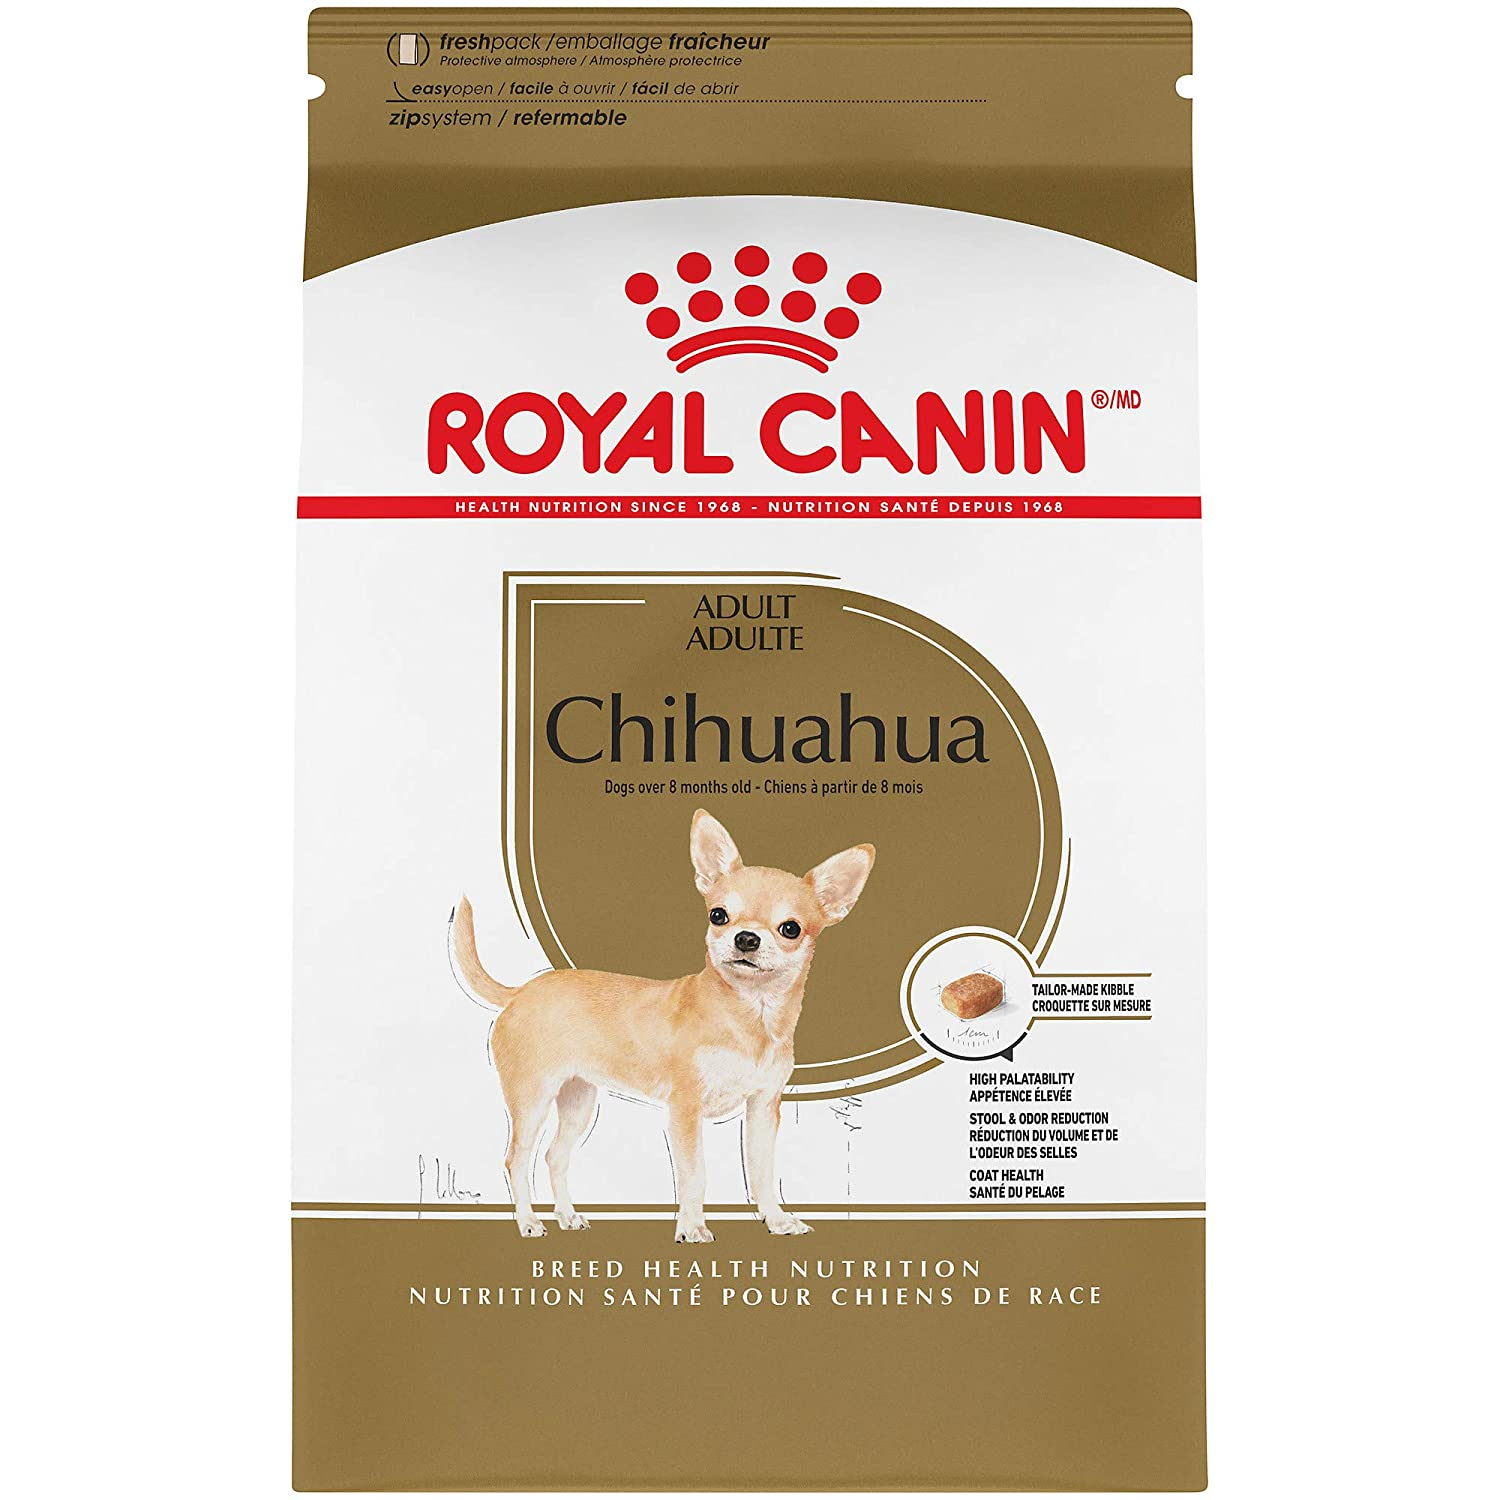 3. Royal Canine Breed Health Nutrition Chihuahua Adult Dry Dog Food